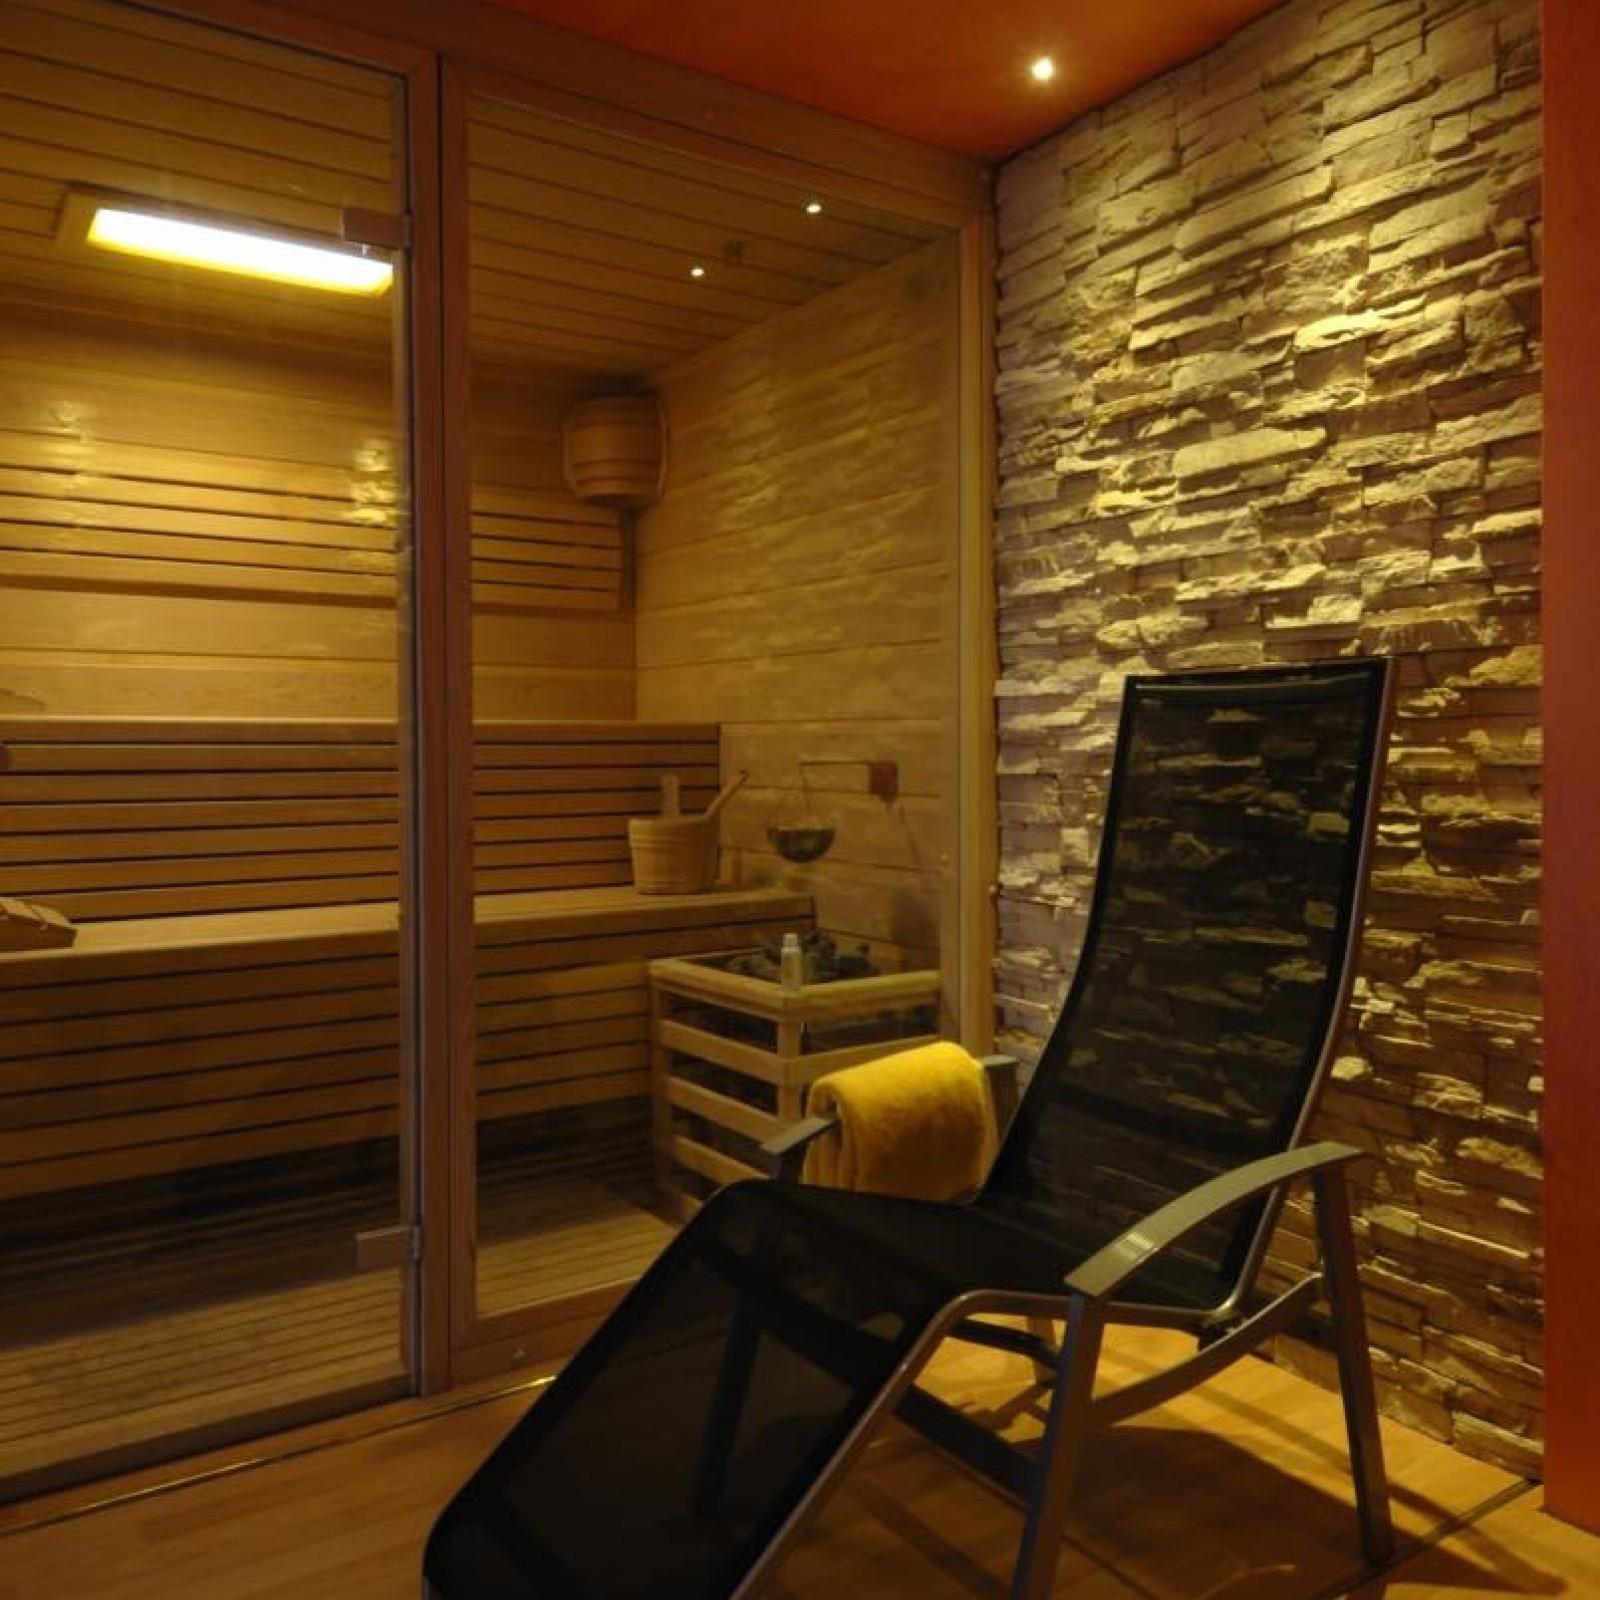 Cemi Relax Room